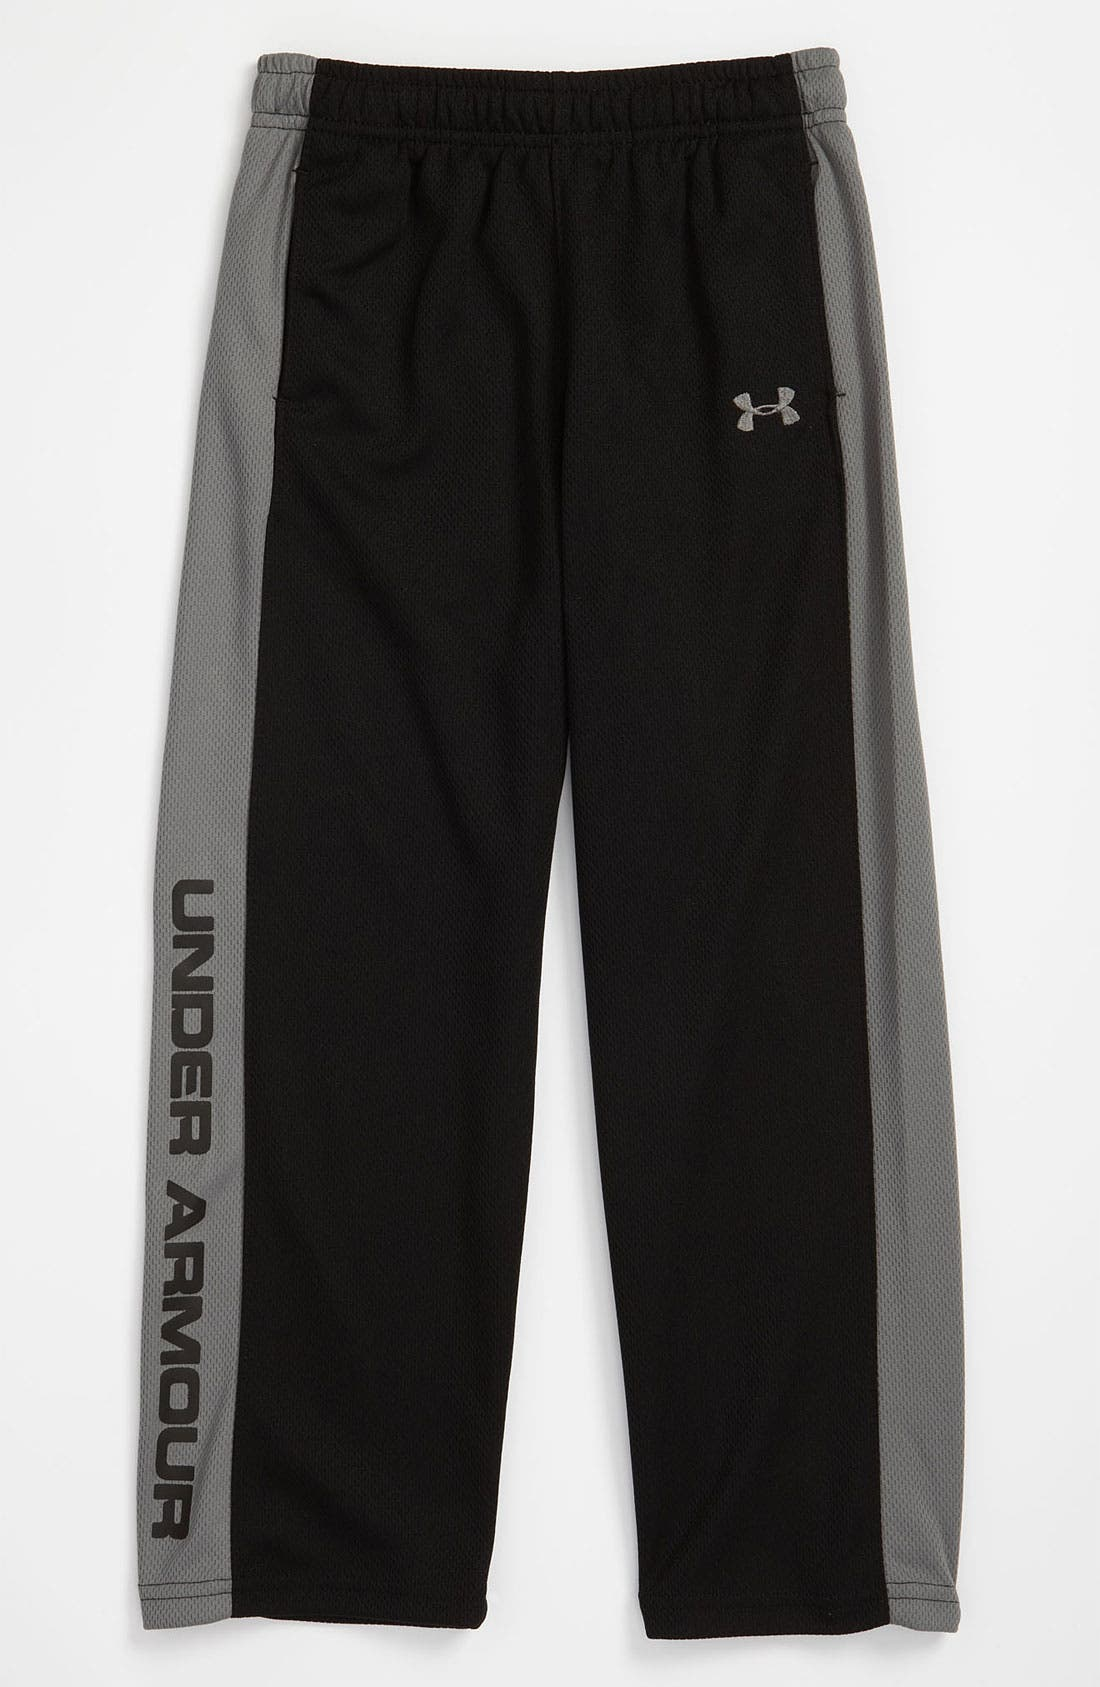 Alternate Image 1 Selected - Under Armour Knit Pants (Little Boys)